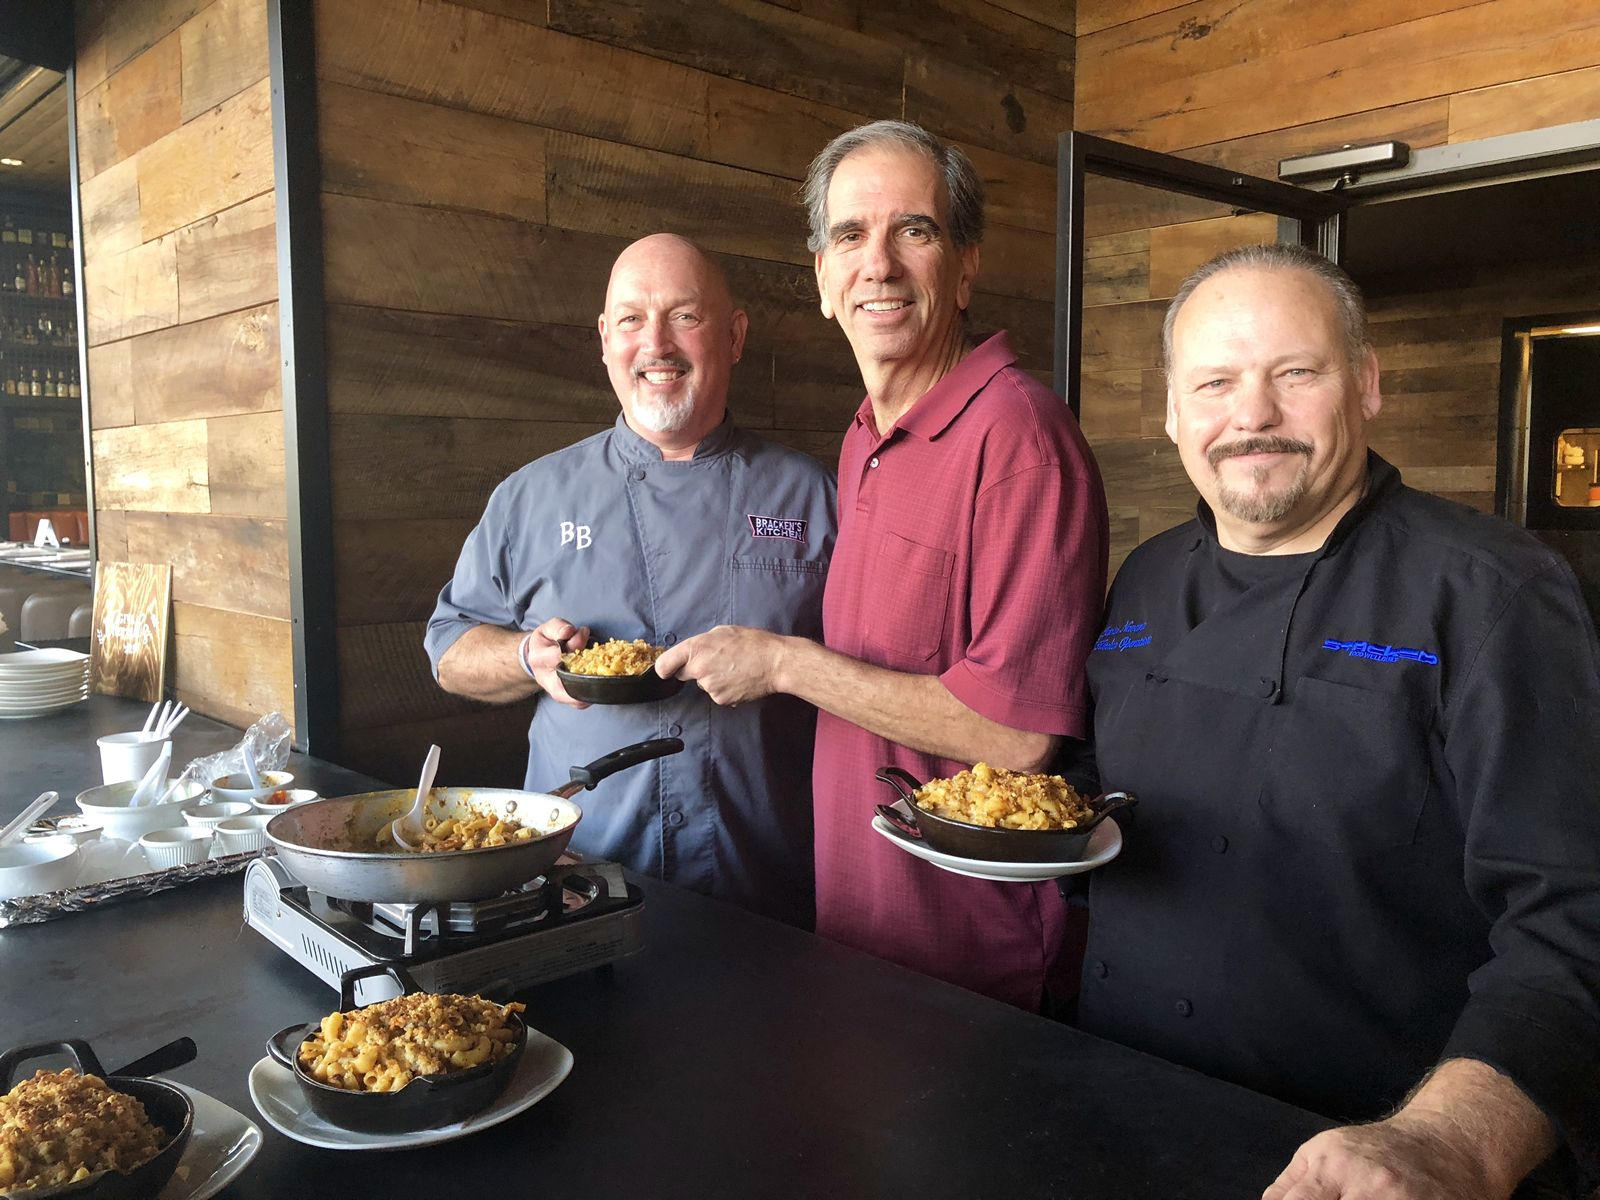 From left, Chef Bill Bracken, Paul Motenko, co founder and co CEO of STACKED, and Javier Navarro, executive chef at STACKED.